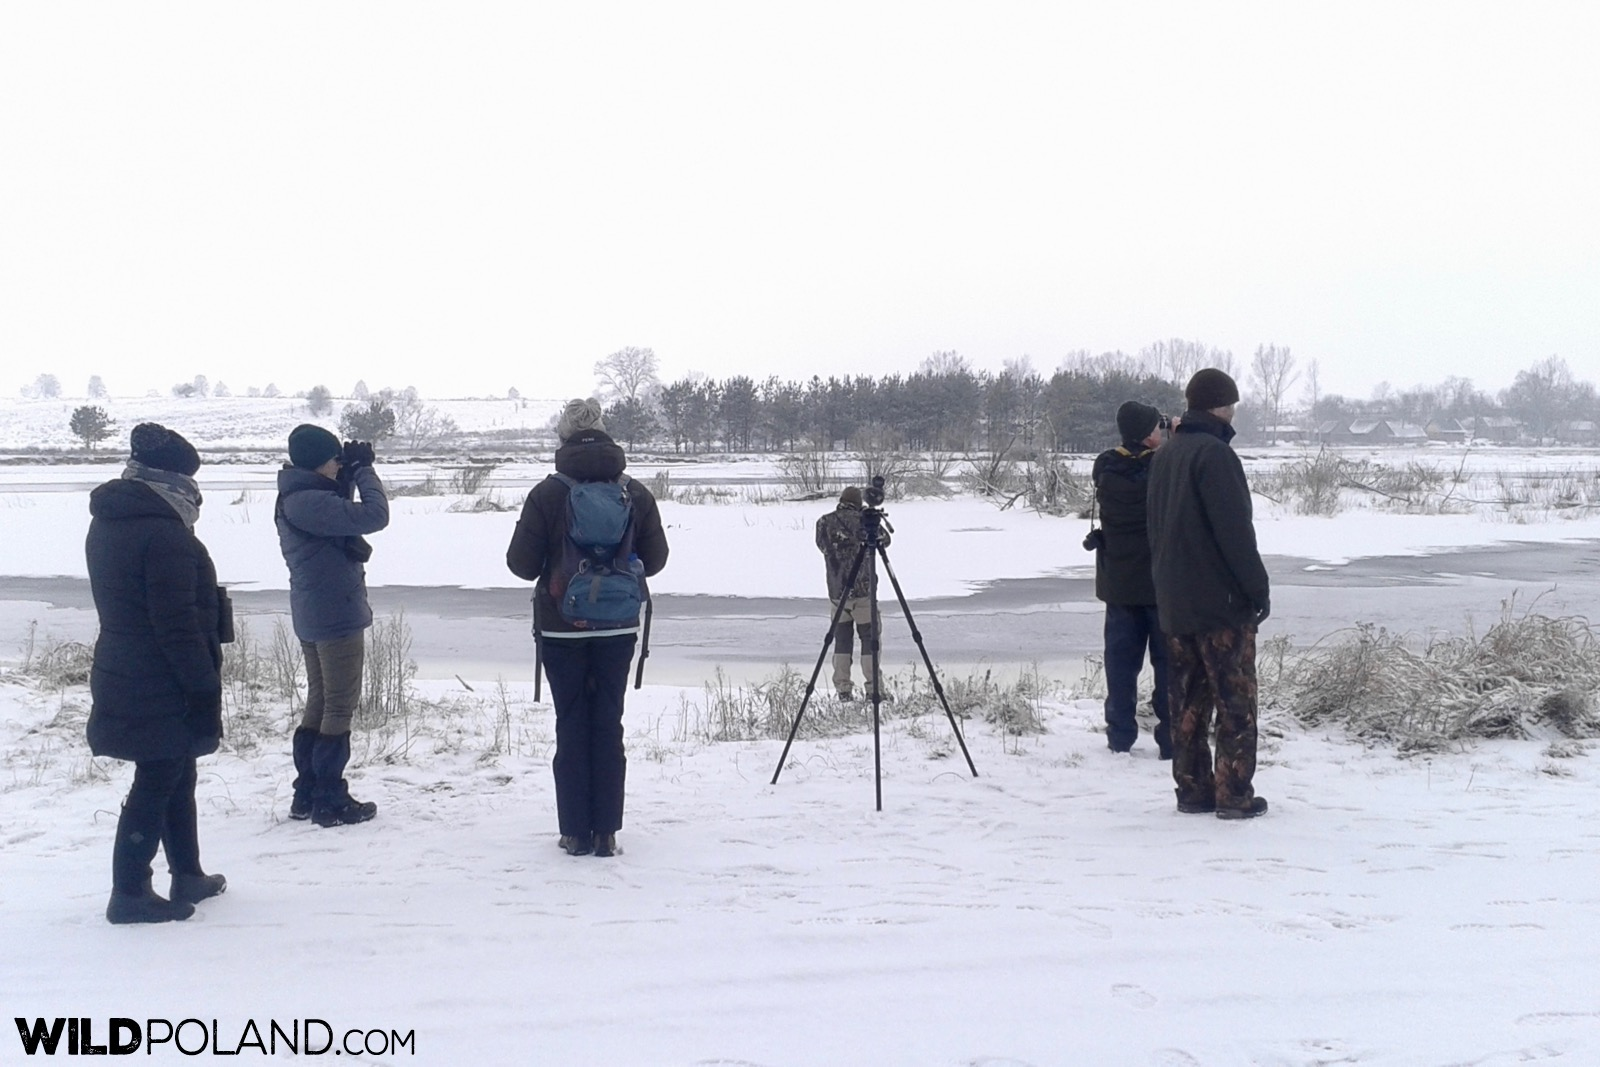 Our group looking out for wildlife at Biebrza Marshes, photo by Piotr Dębowski